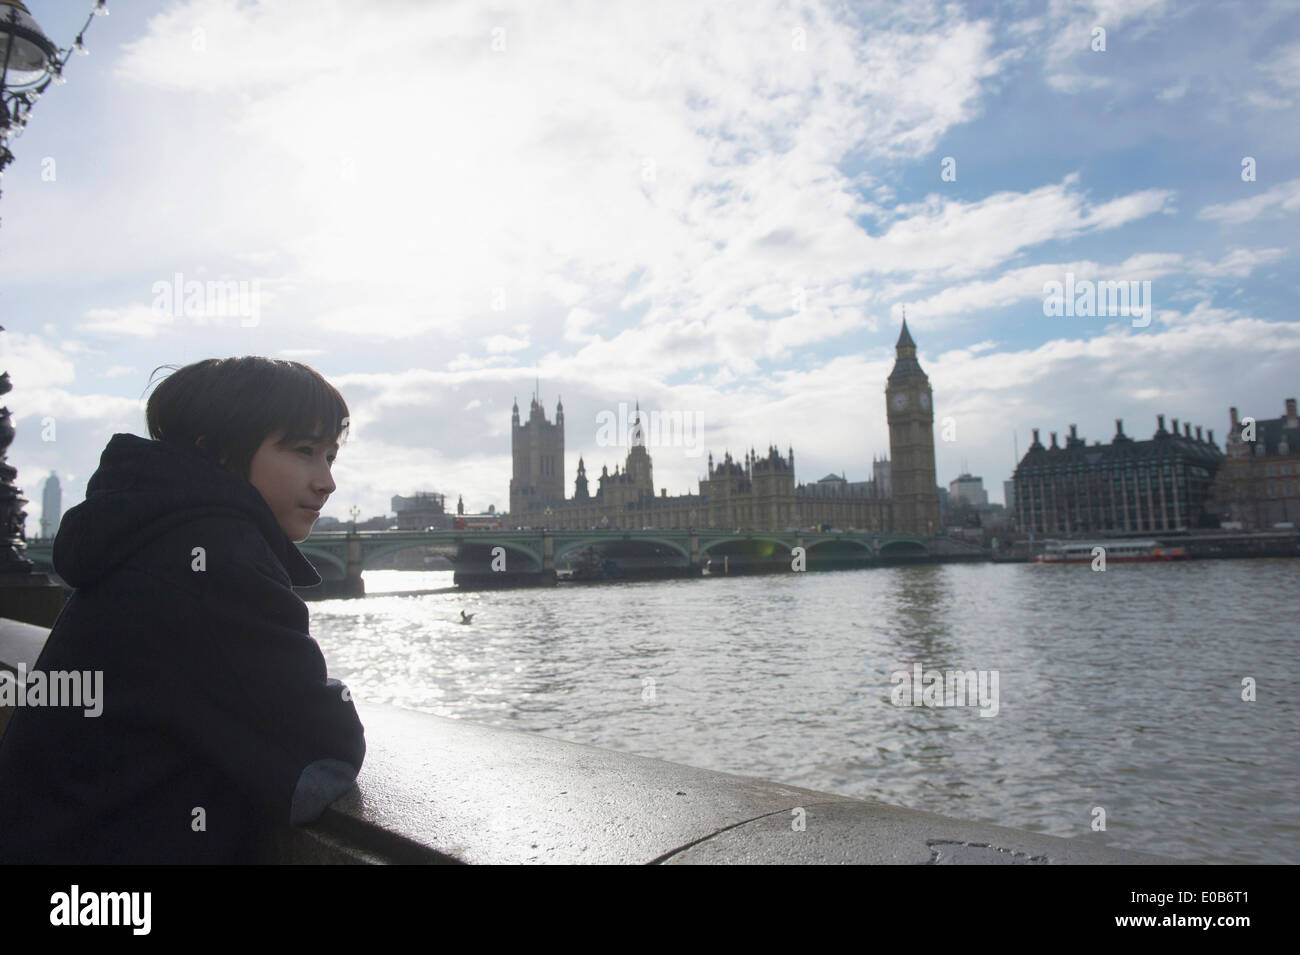 Boy by River Thames, Palace of Westminster in background, London Stock Photo